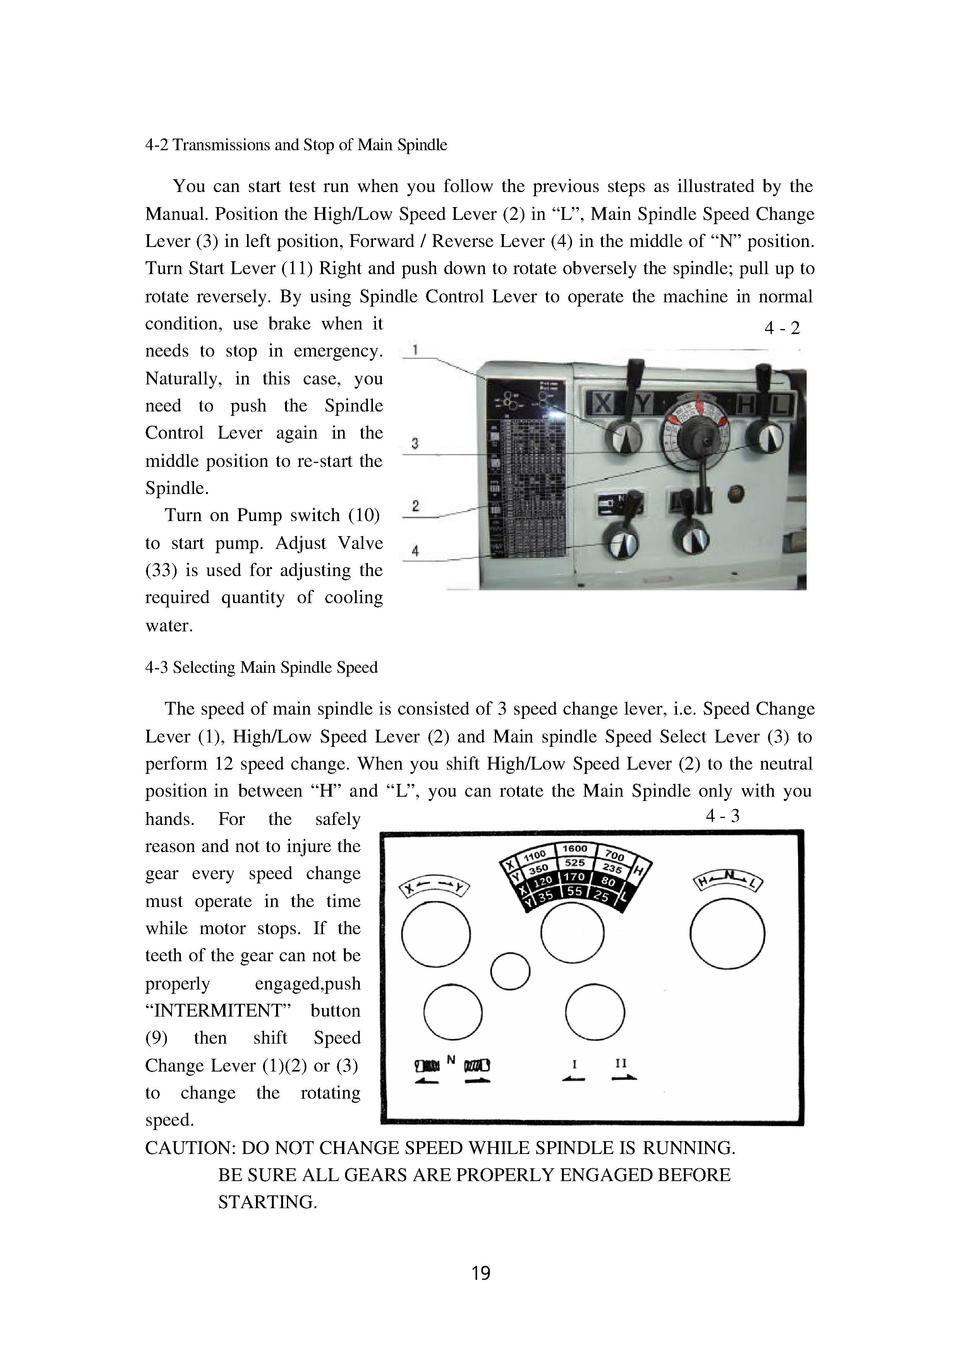 4-2 Transmissions and Stop of Main Spindle  You can start test run when you follow the previous steps as illustrated by th...